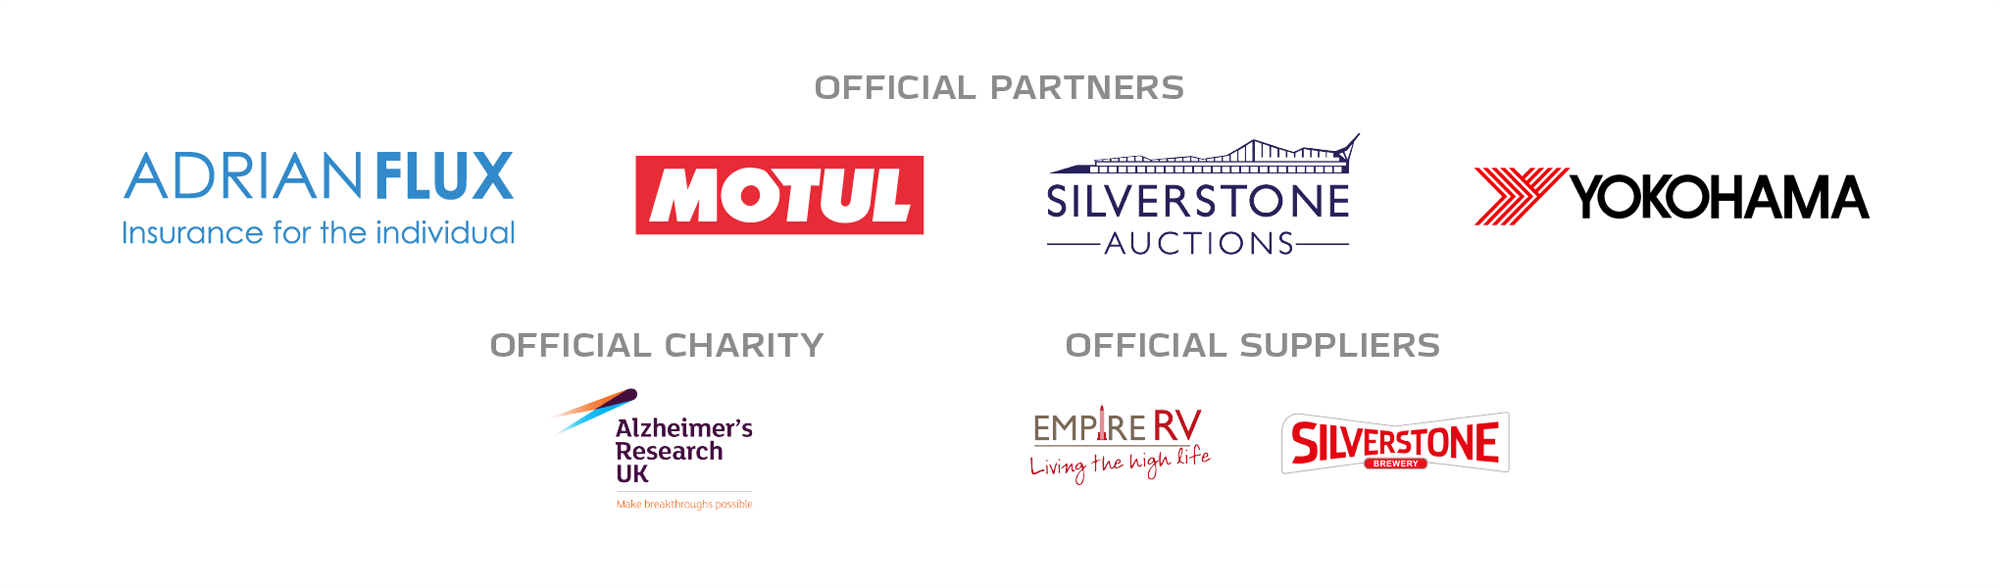 The Classic partner logos